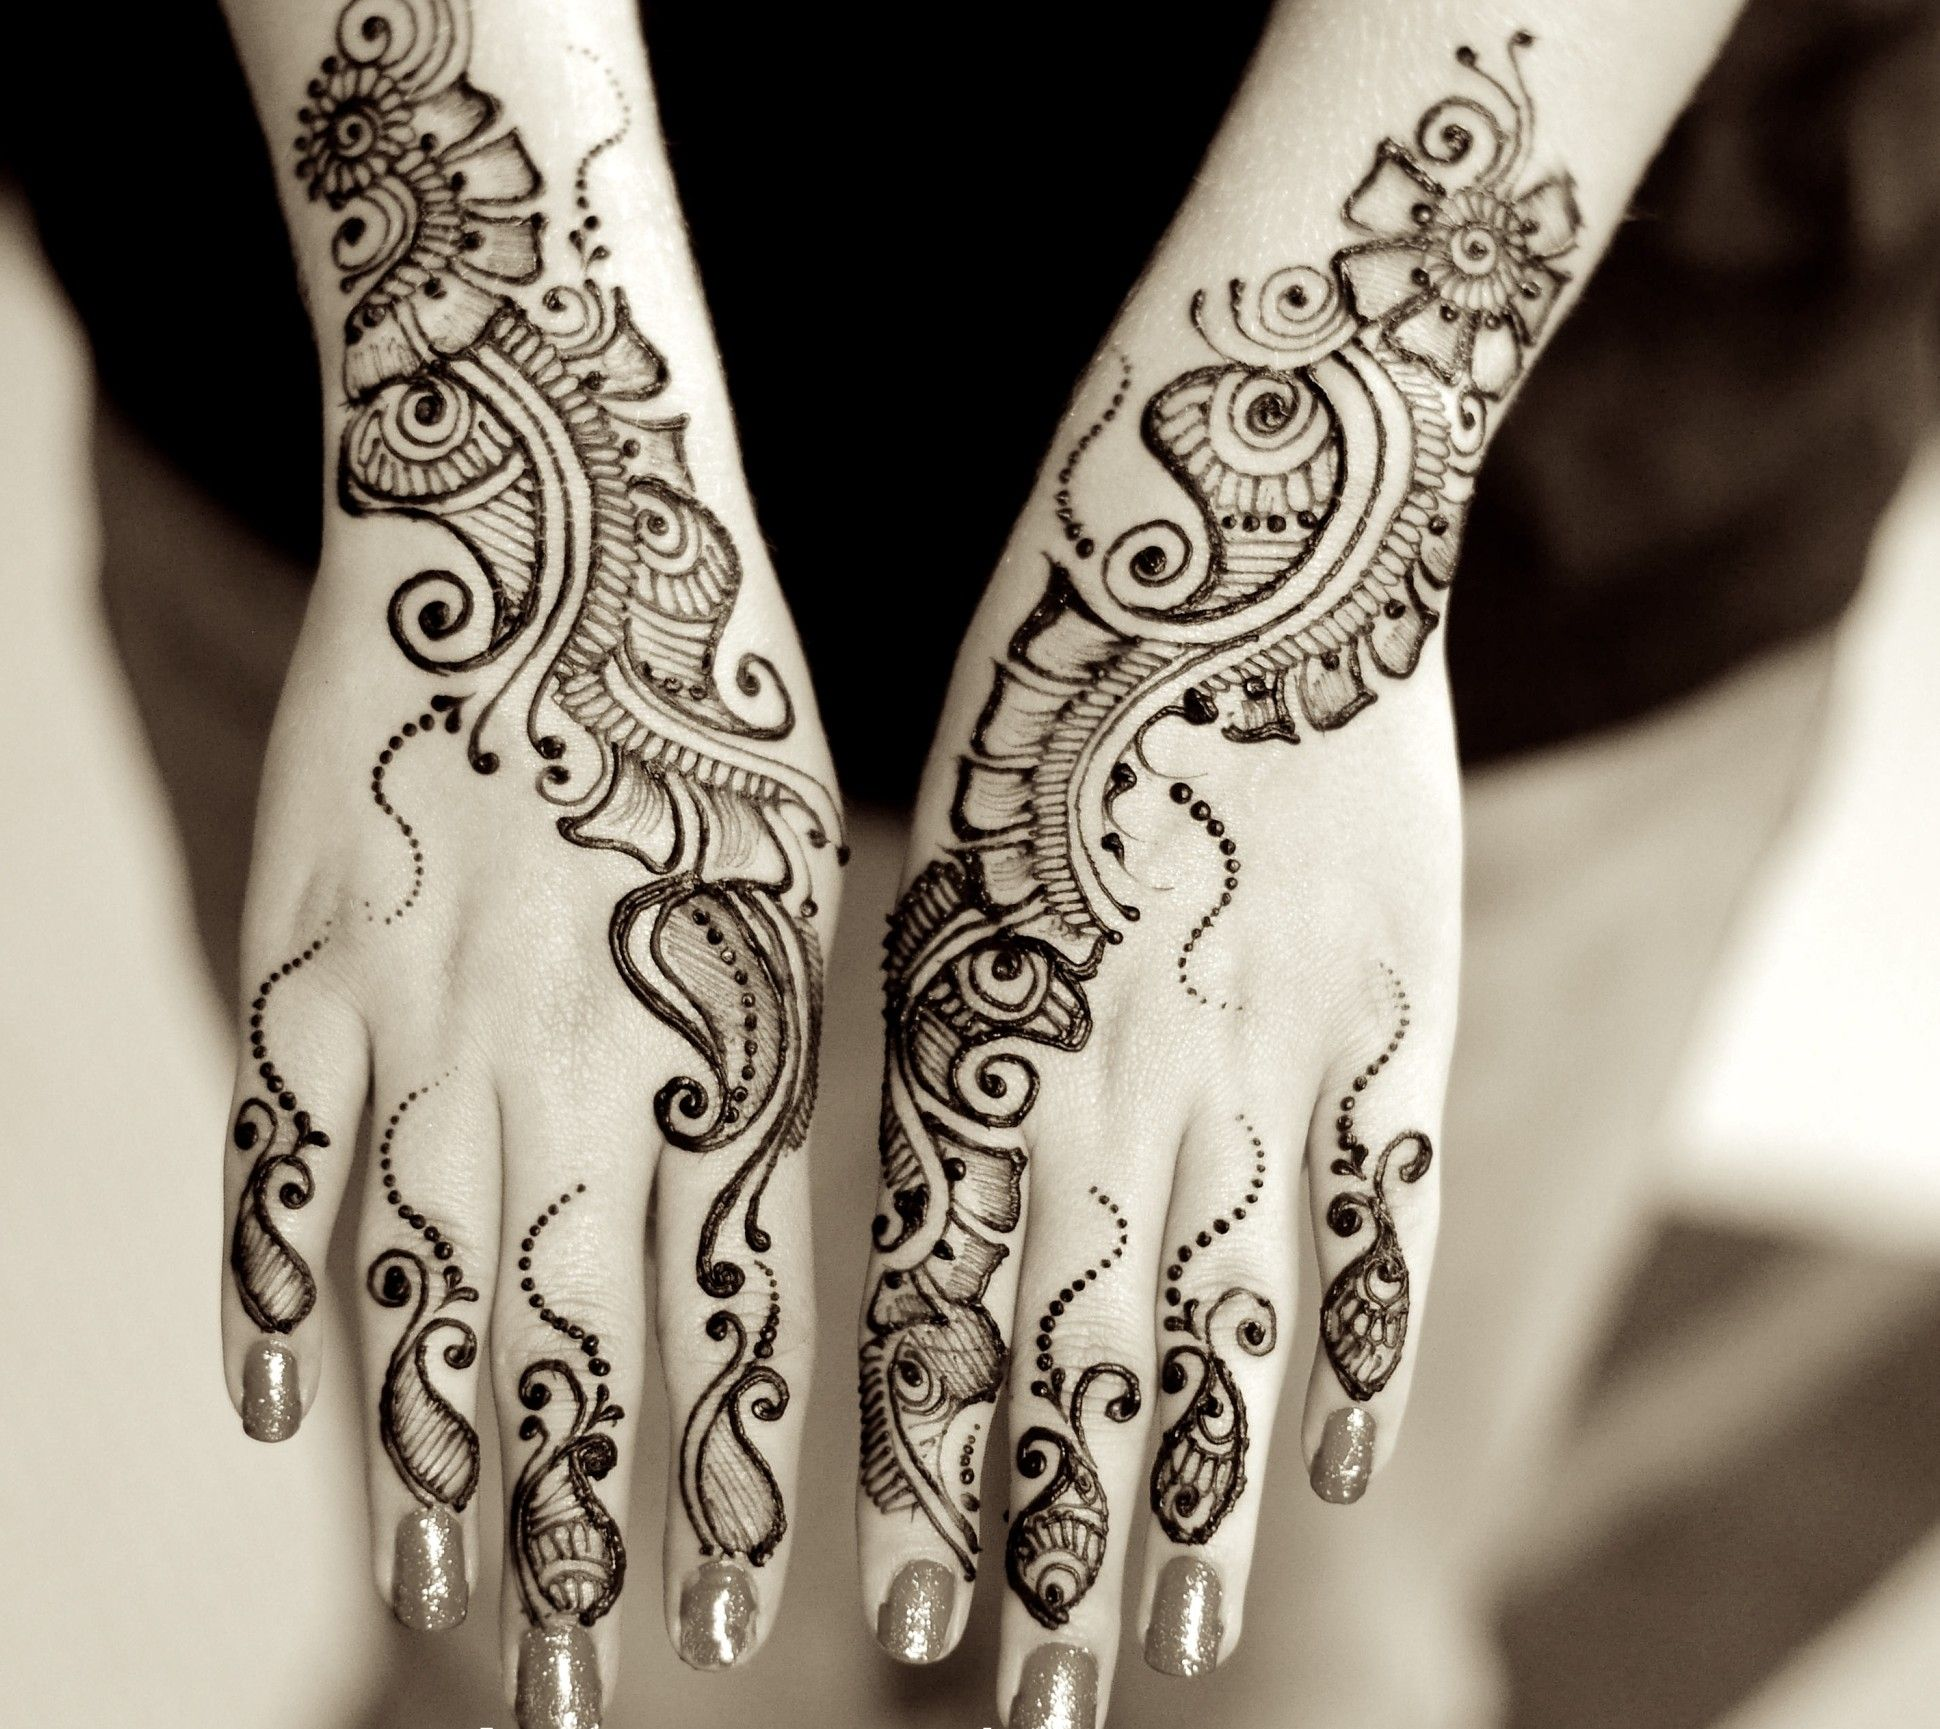 Images about mehndi design on pinterest mehndi - She Gives Valuable Advice For Soon To Be Brides Shares Her Views About The Latest Mehndi Designs And Showcases Her Stunning Artwork